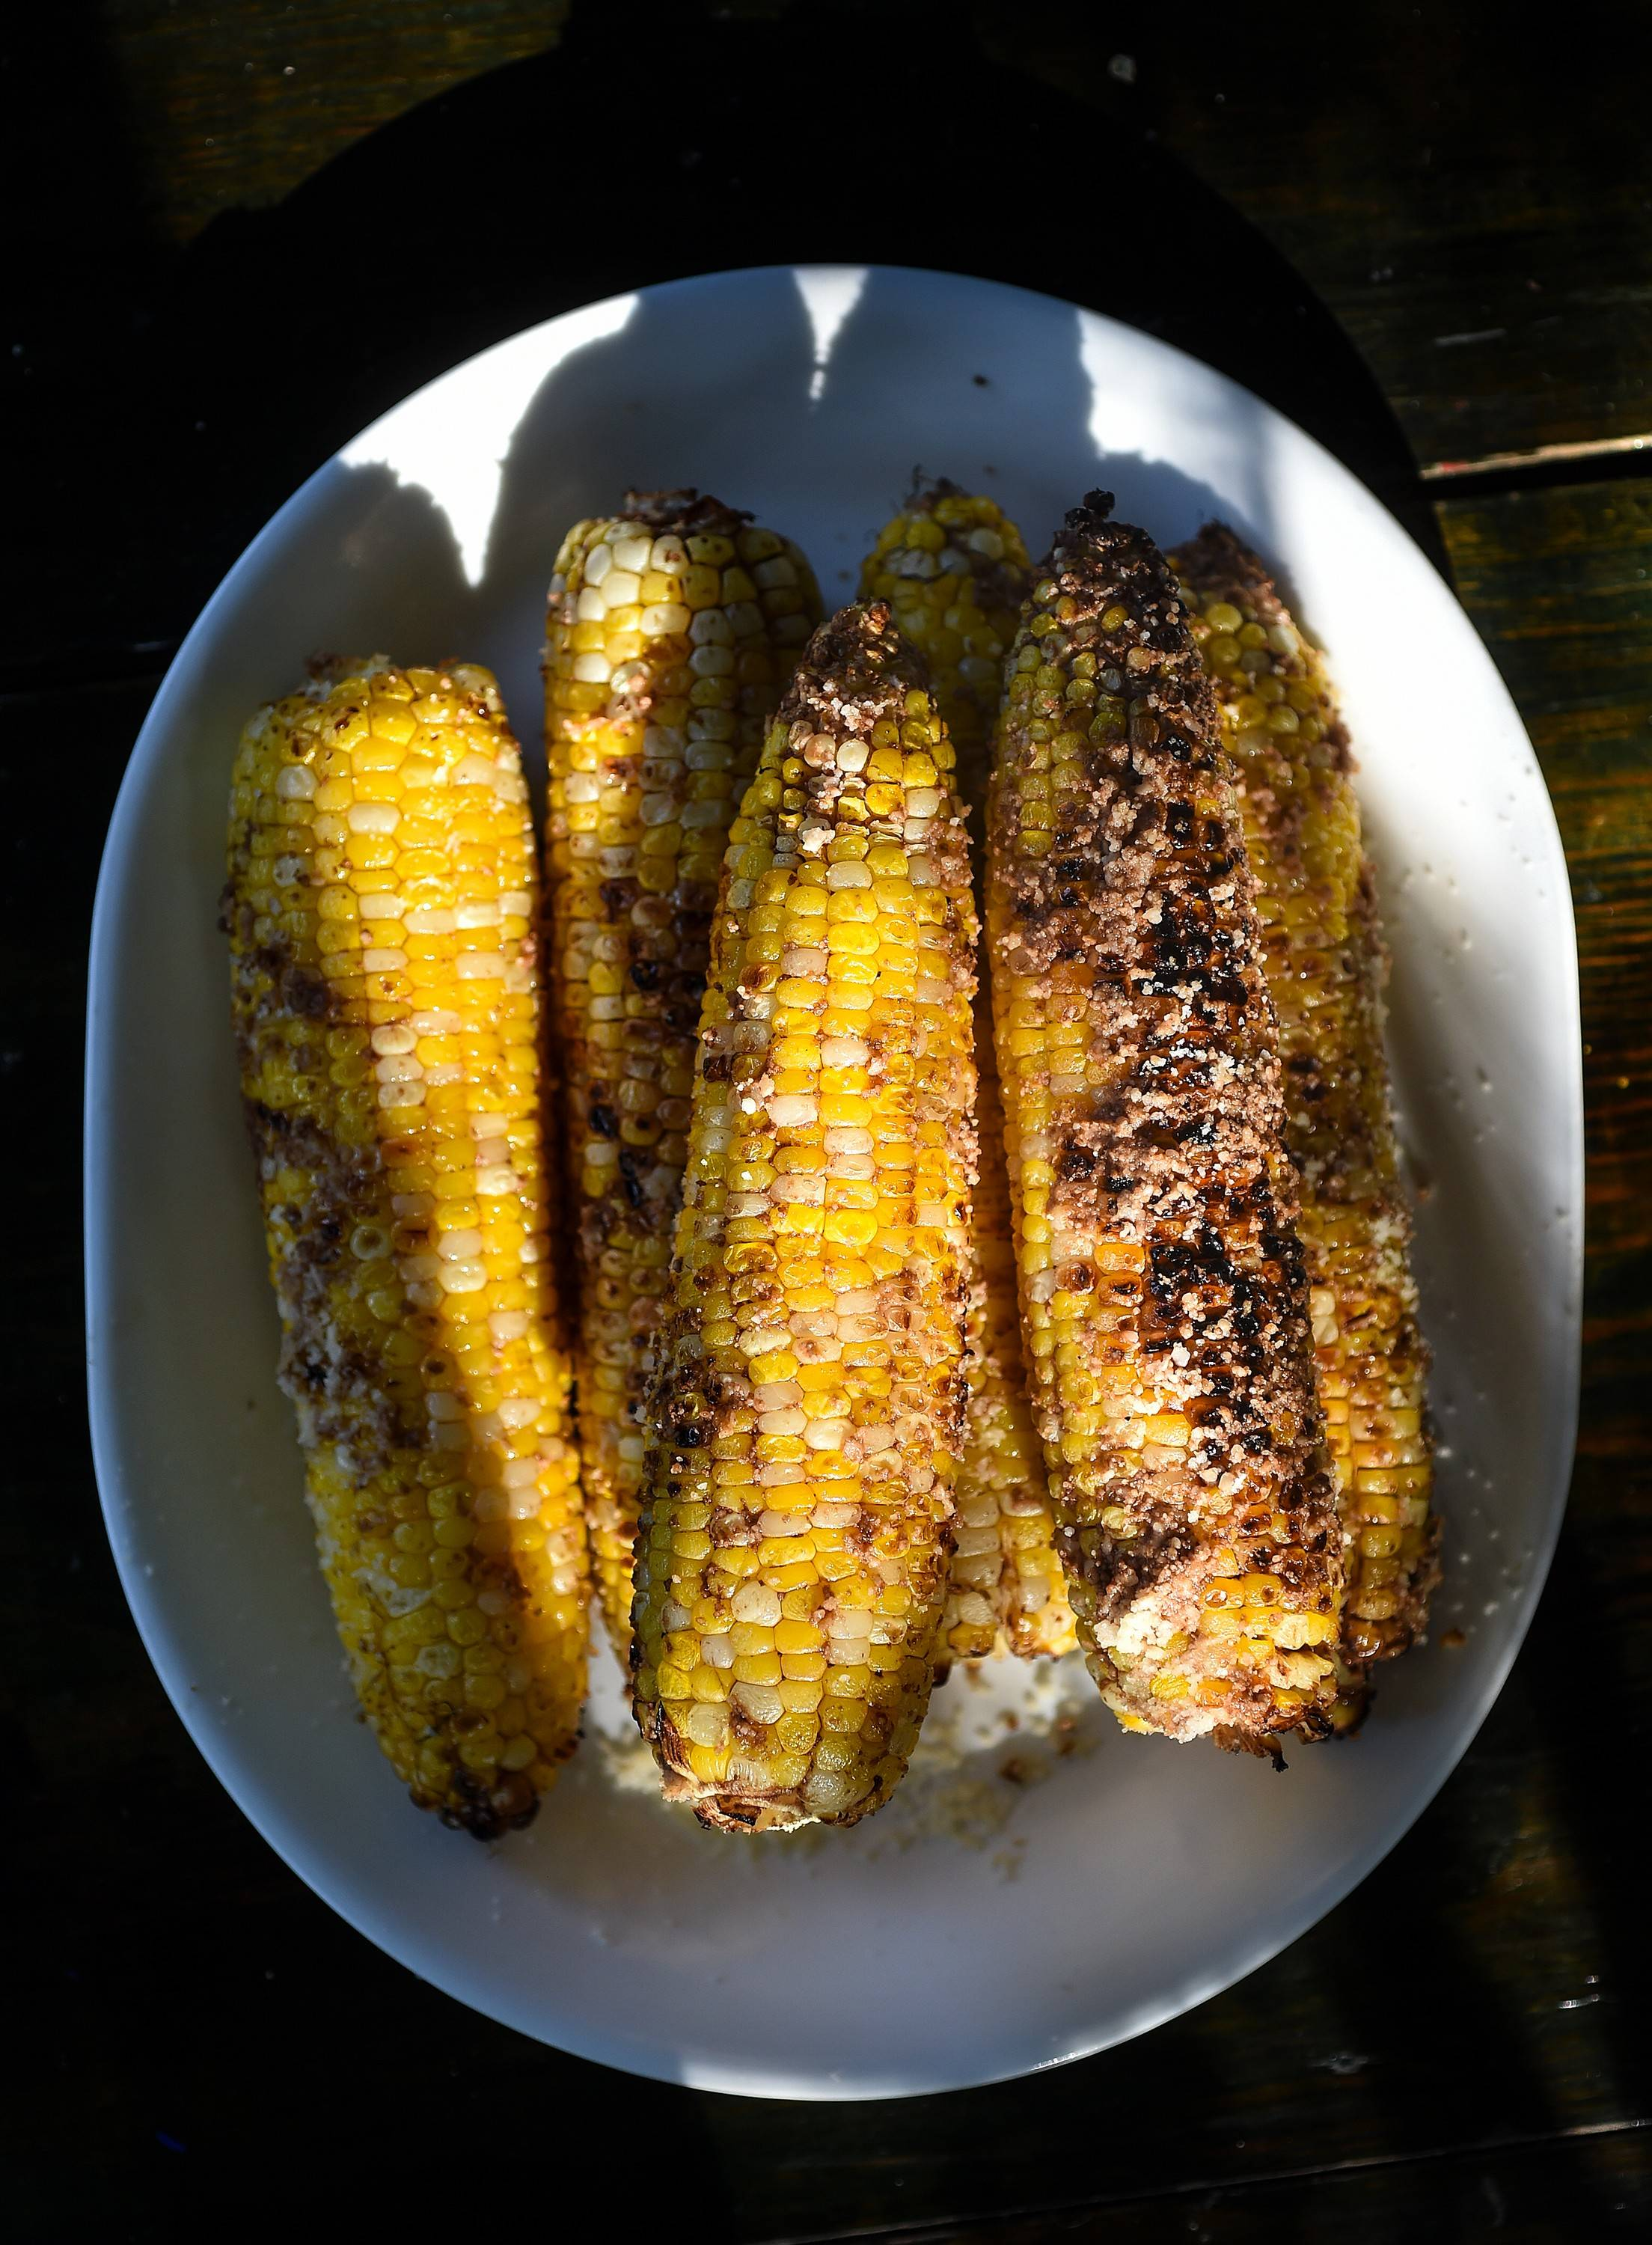 On the grill: Italian Corn.